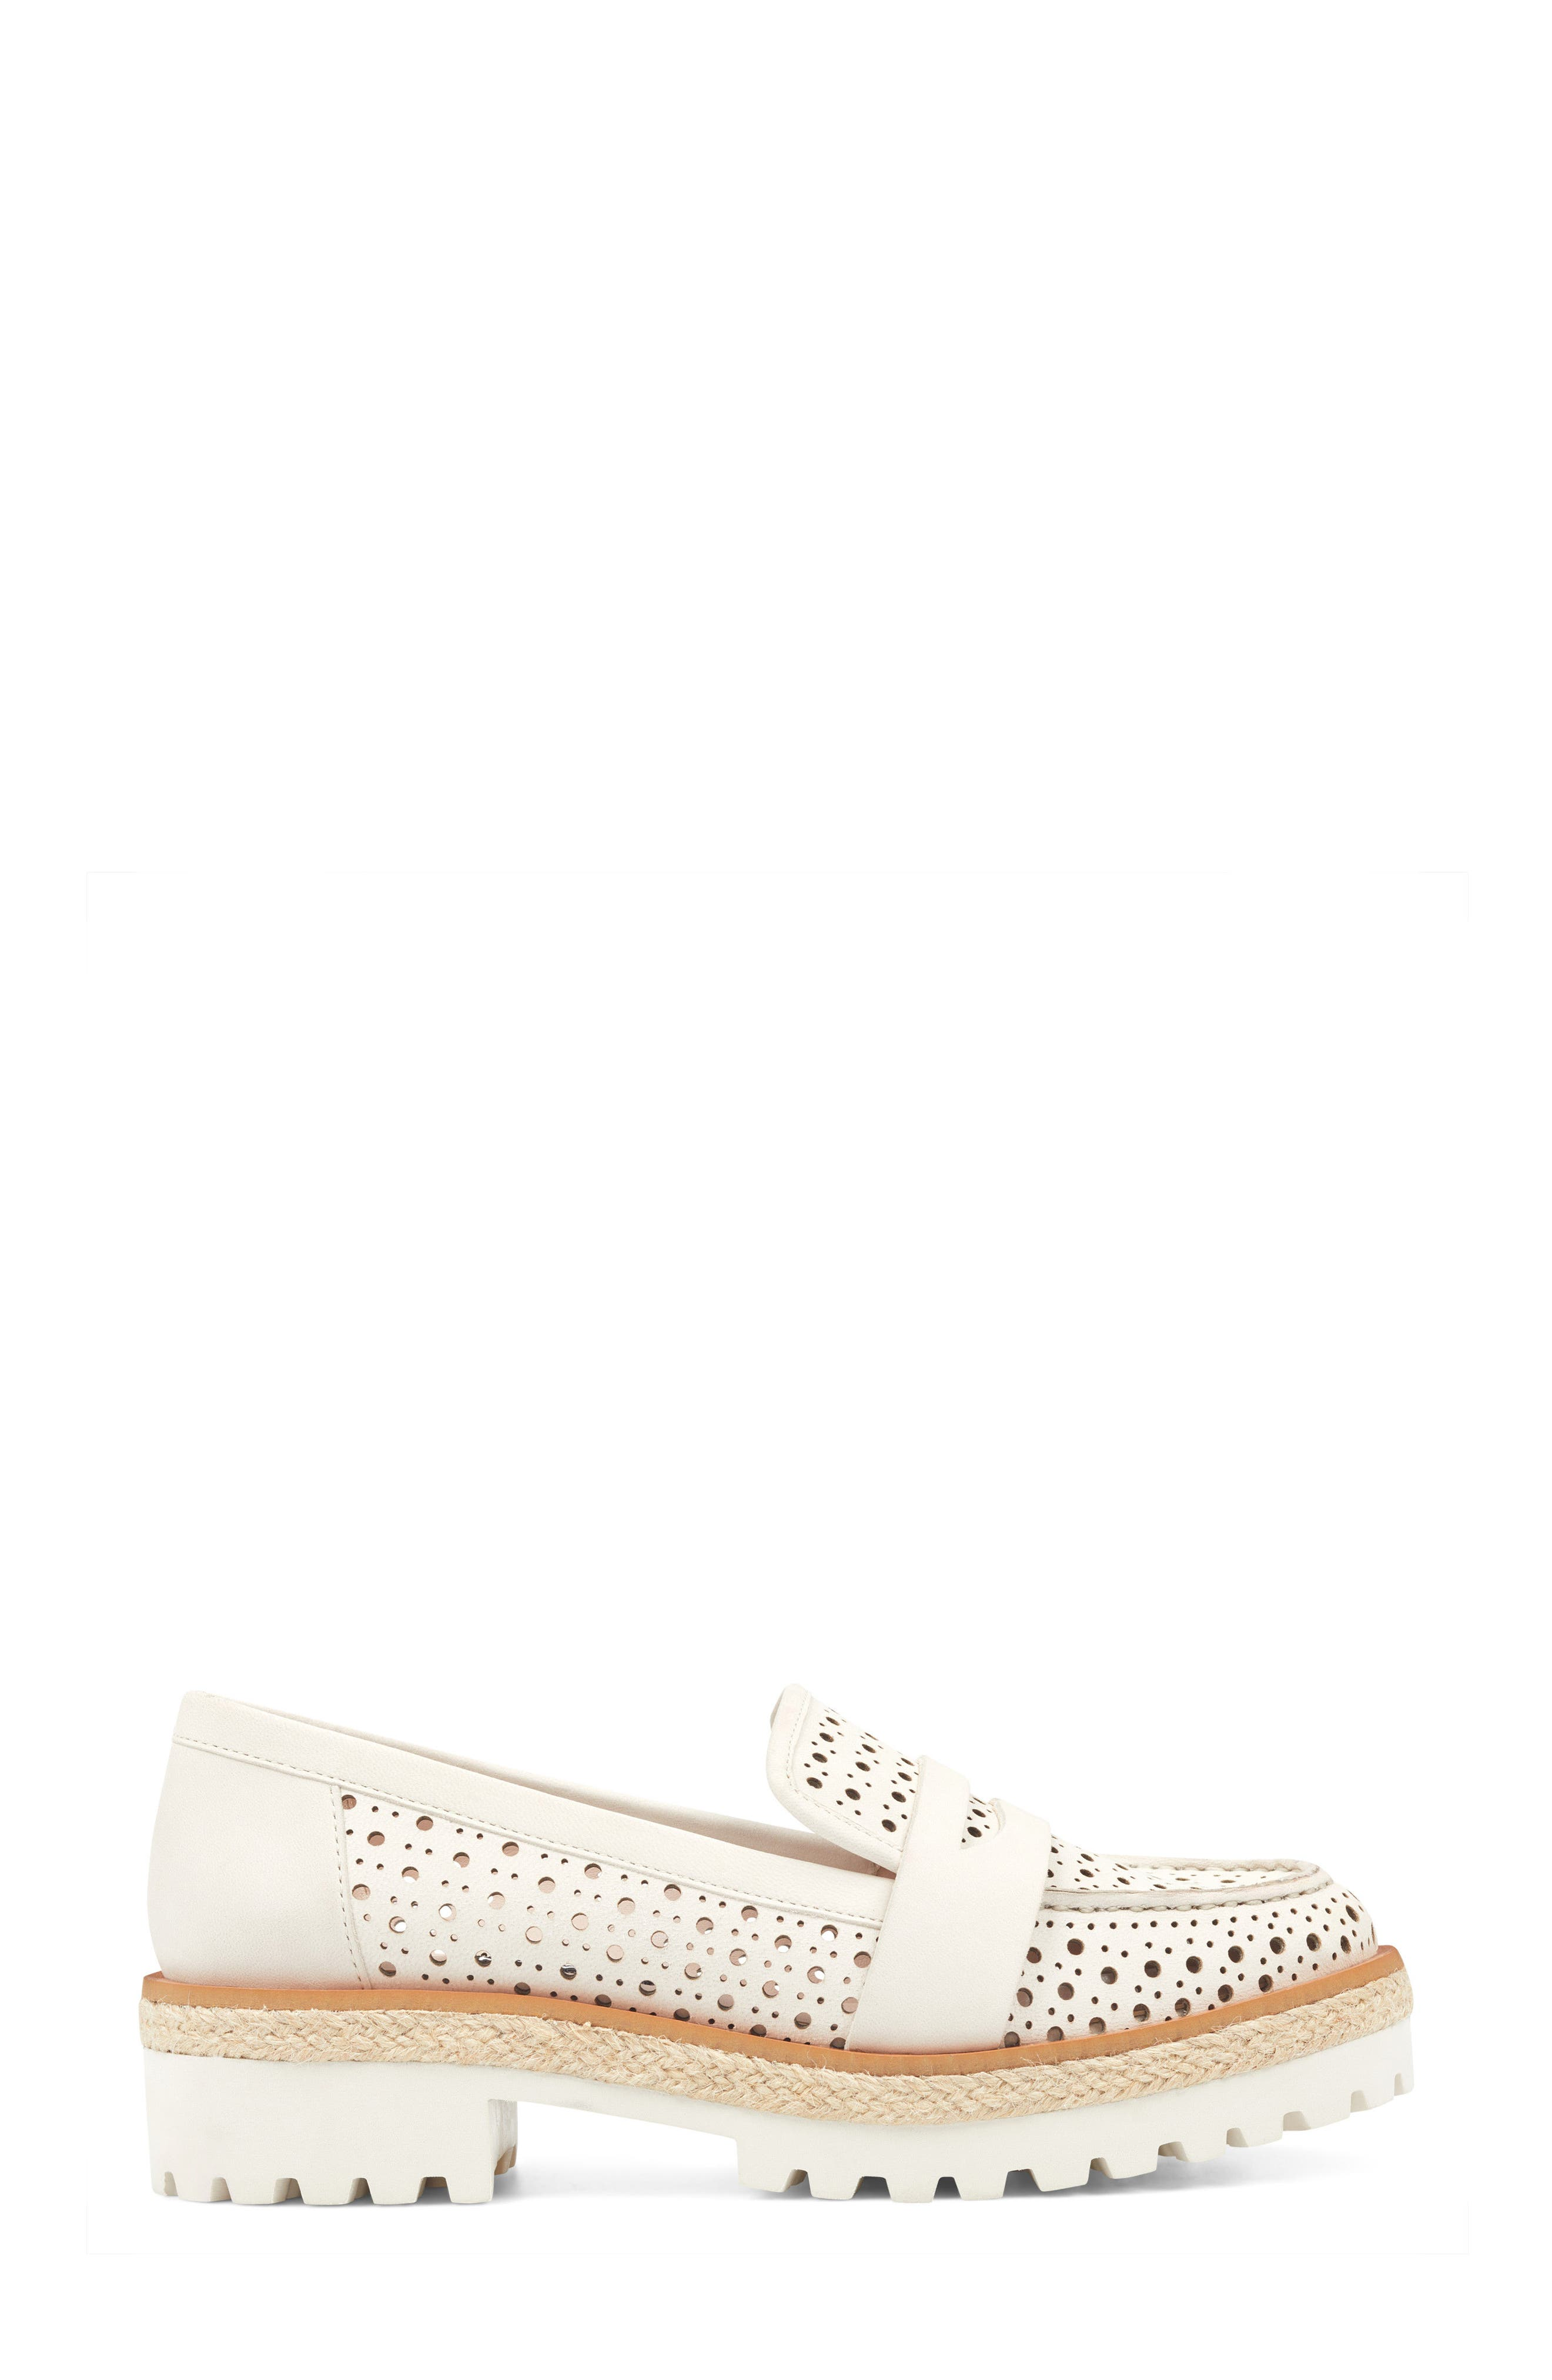 Gradskool Perforated Penny Loafer,                             Alternate thumbnail 3, color,                             Off White Leather